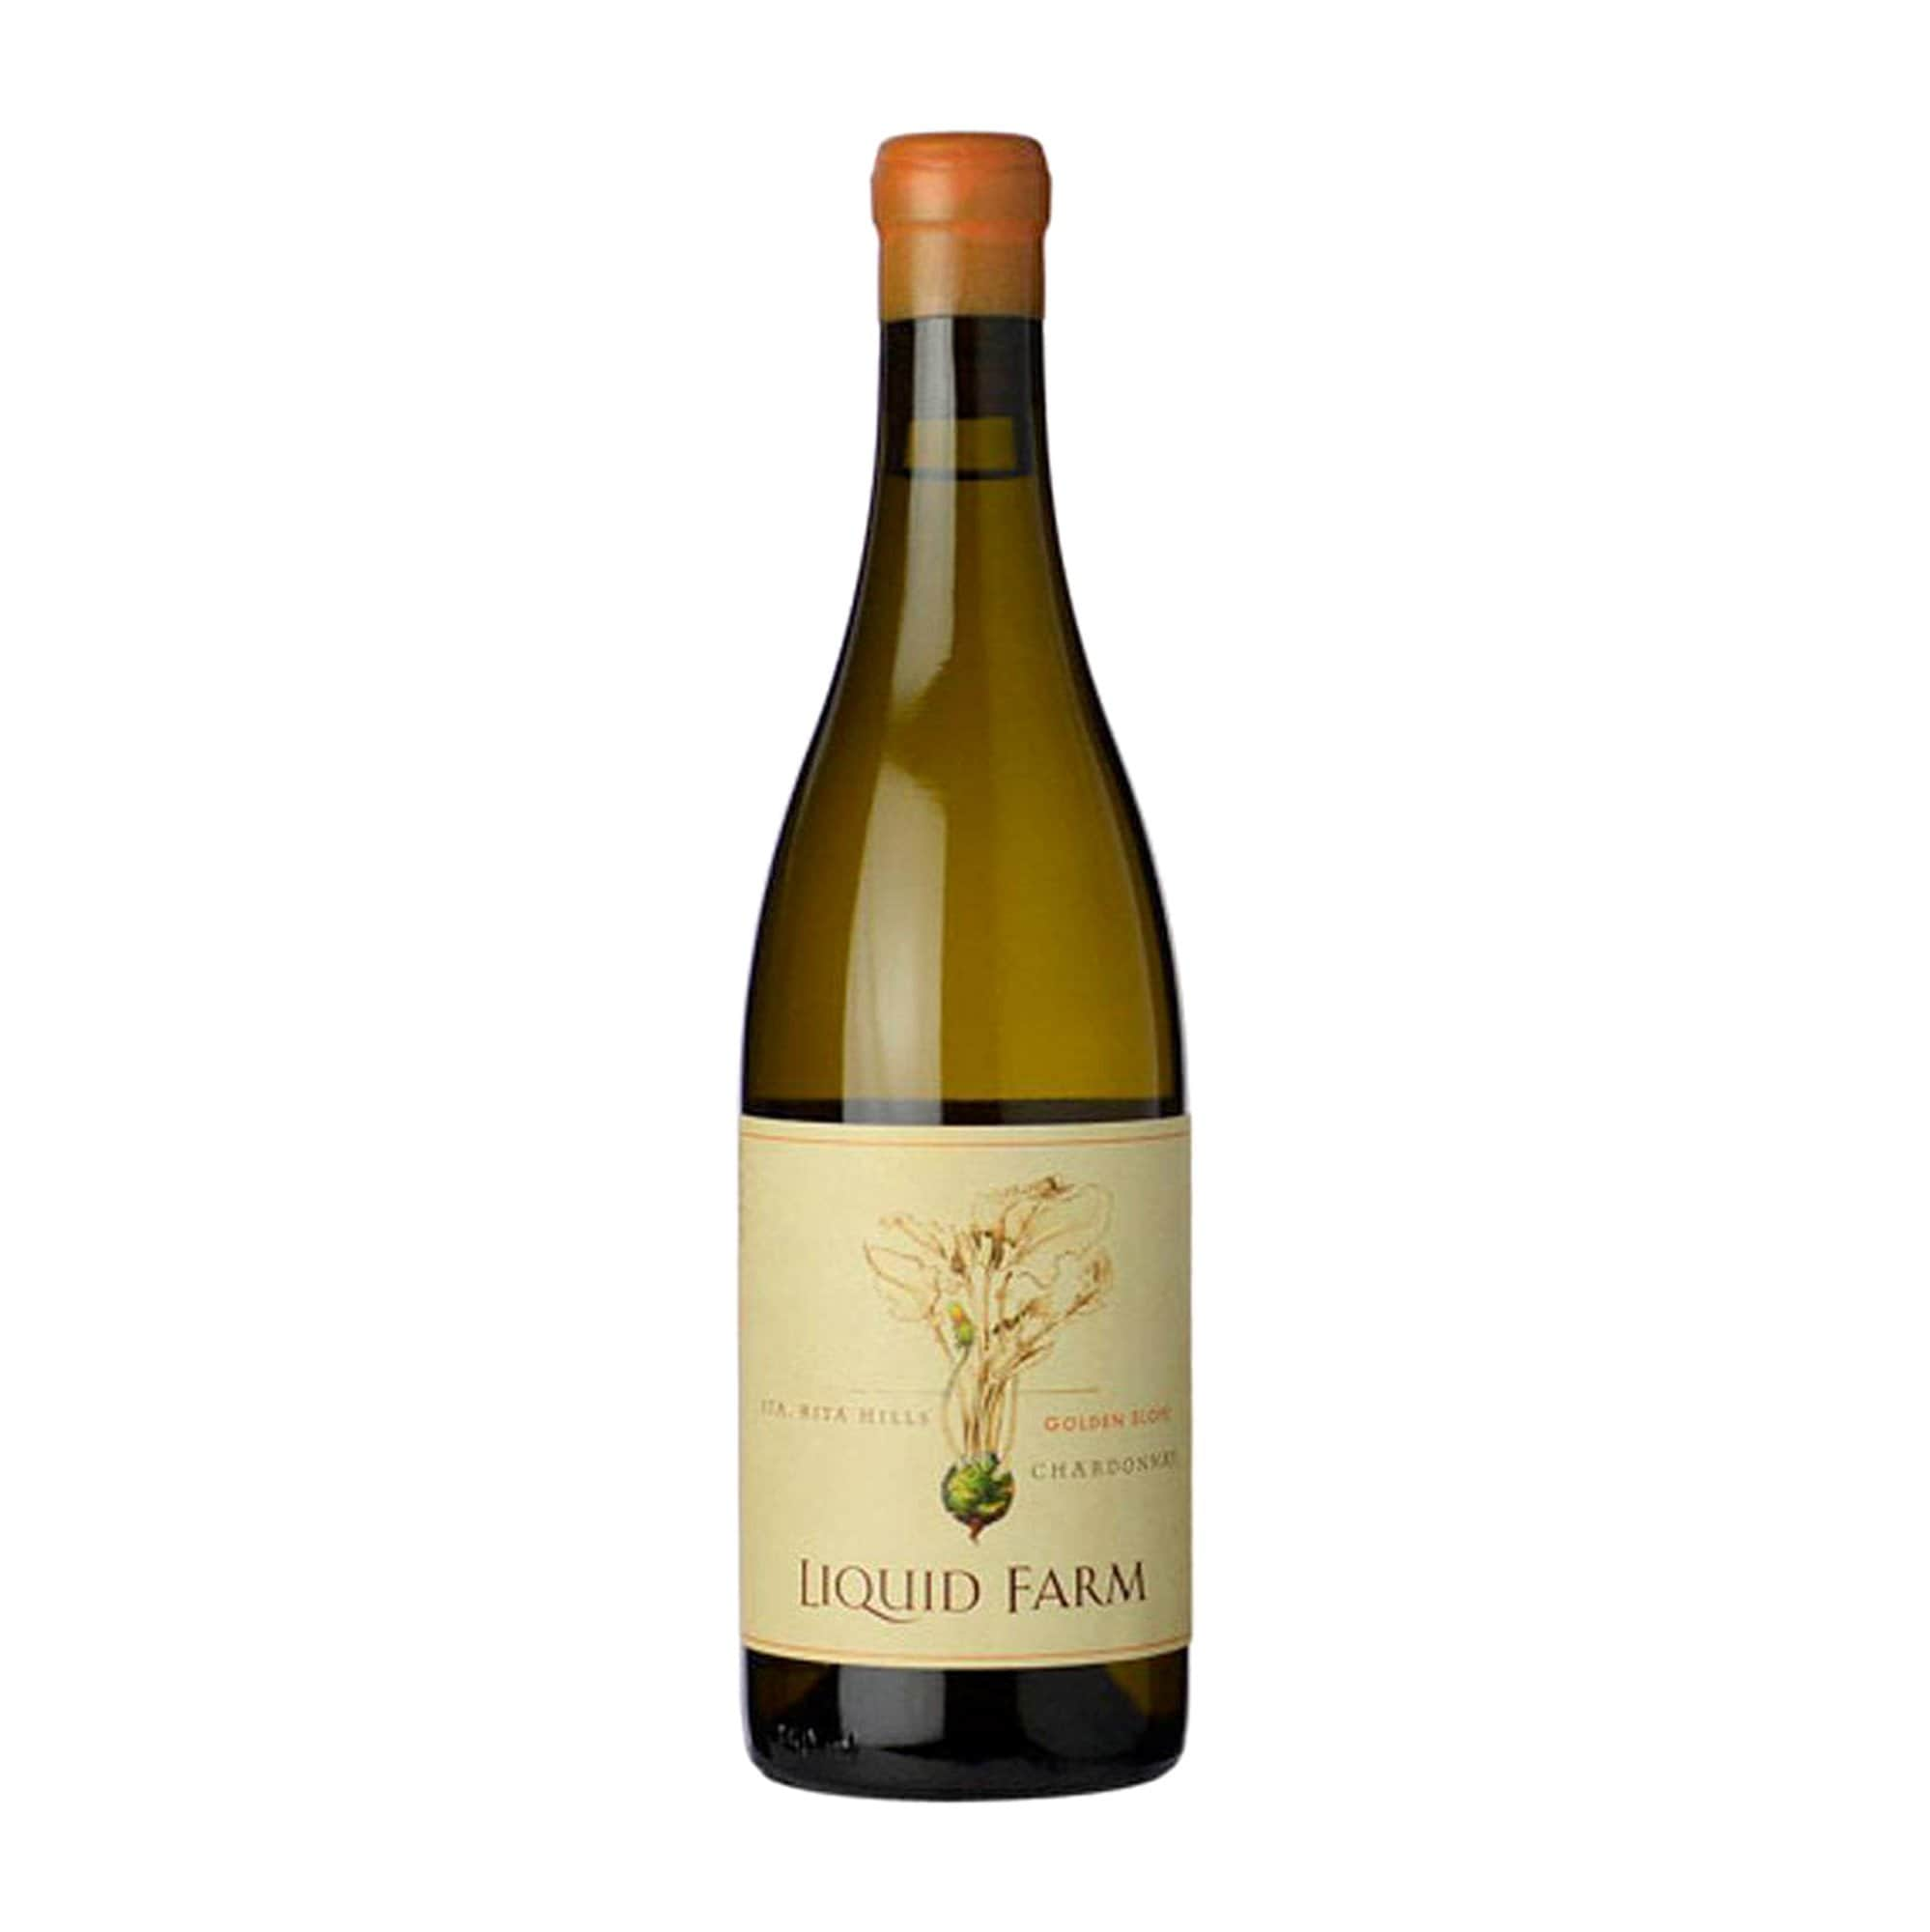 White Wine Golden Slope Chardonnay Liquid Farm 2013 (Magnum)